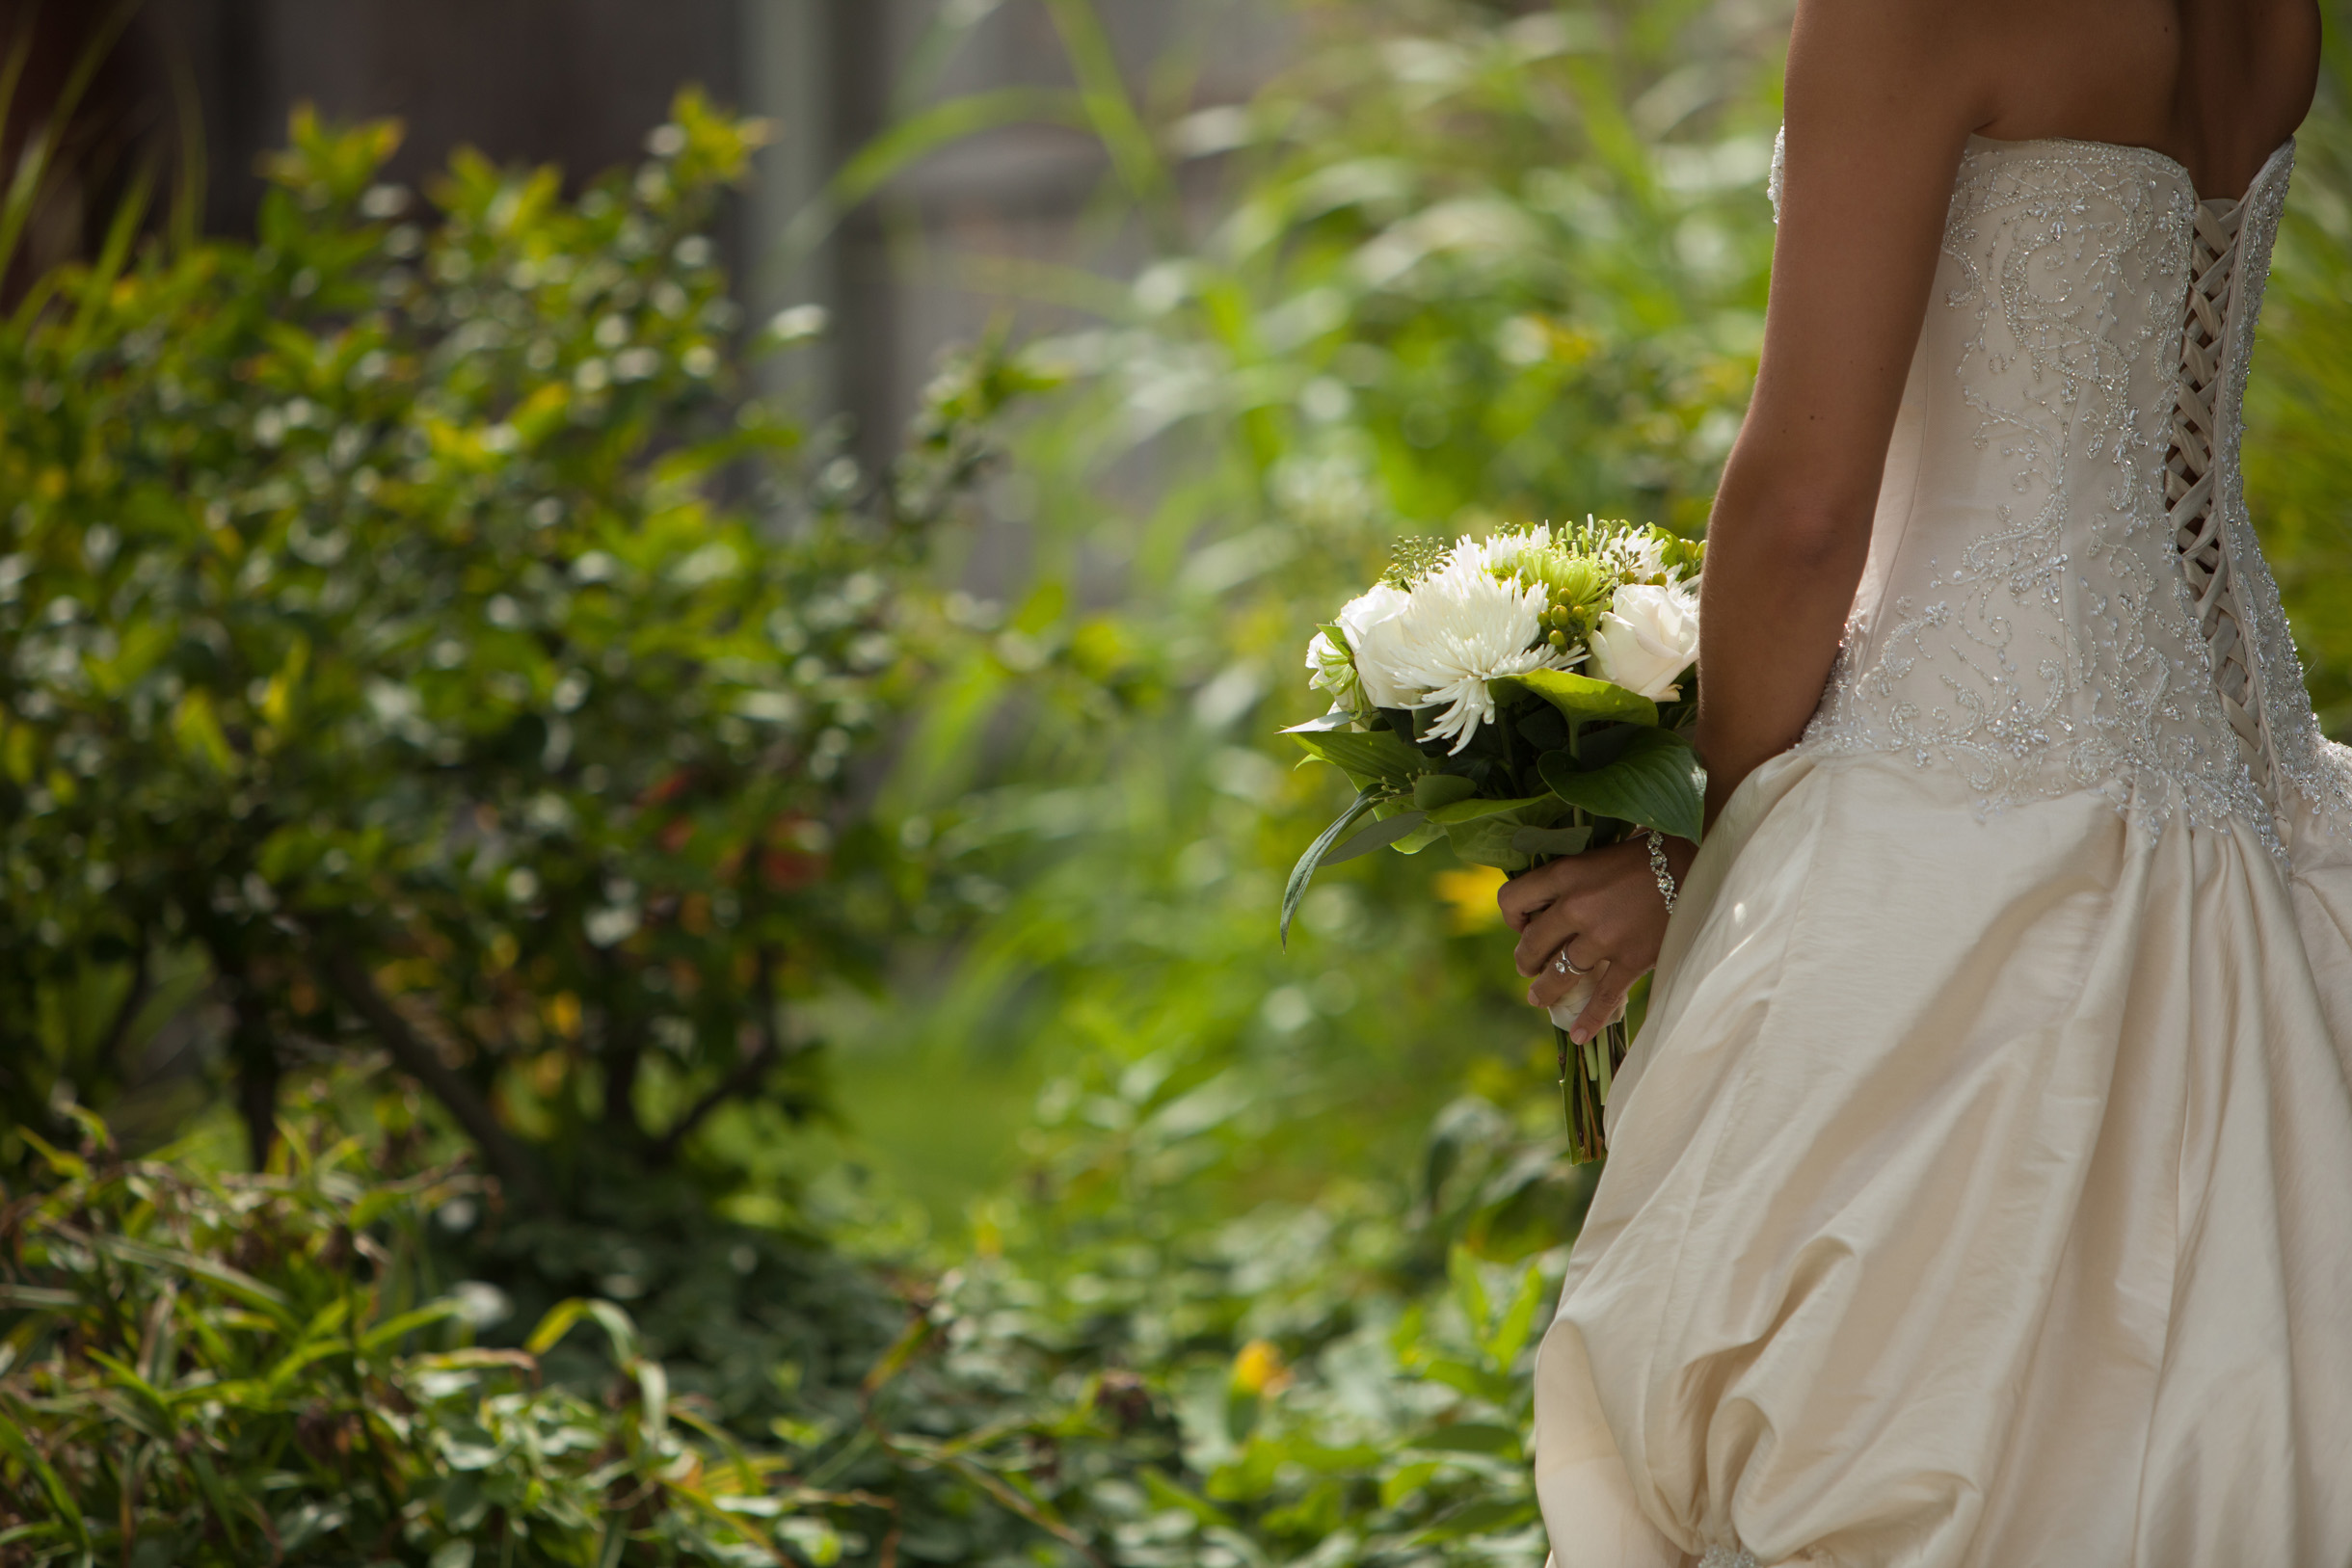 Bride holding bouquet in white dress with tie up back